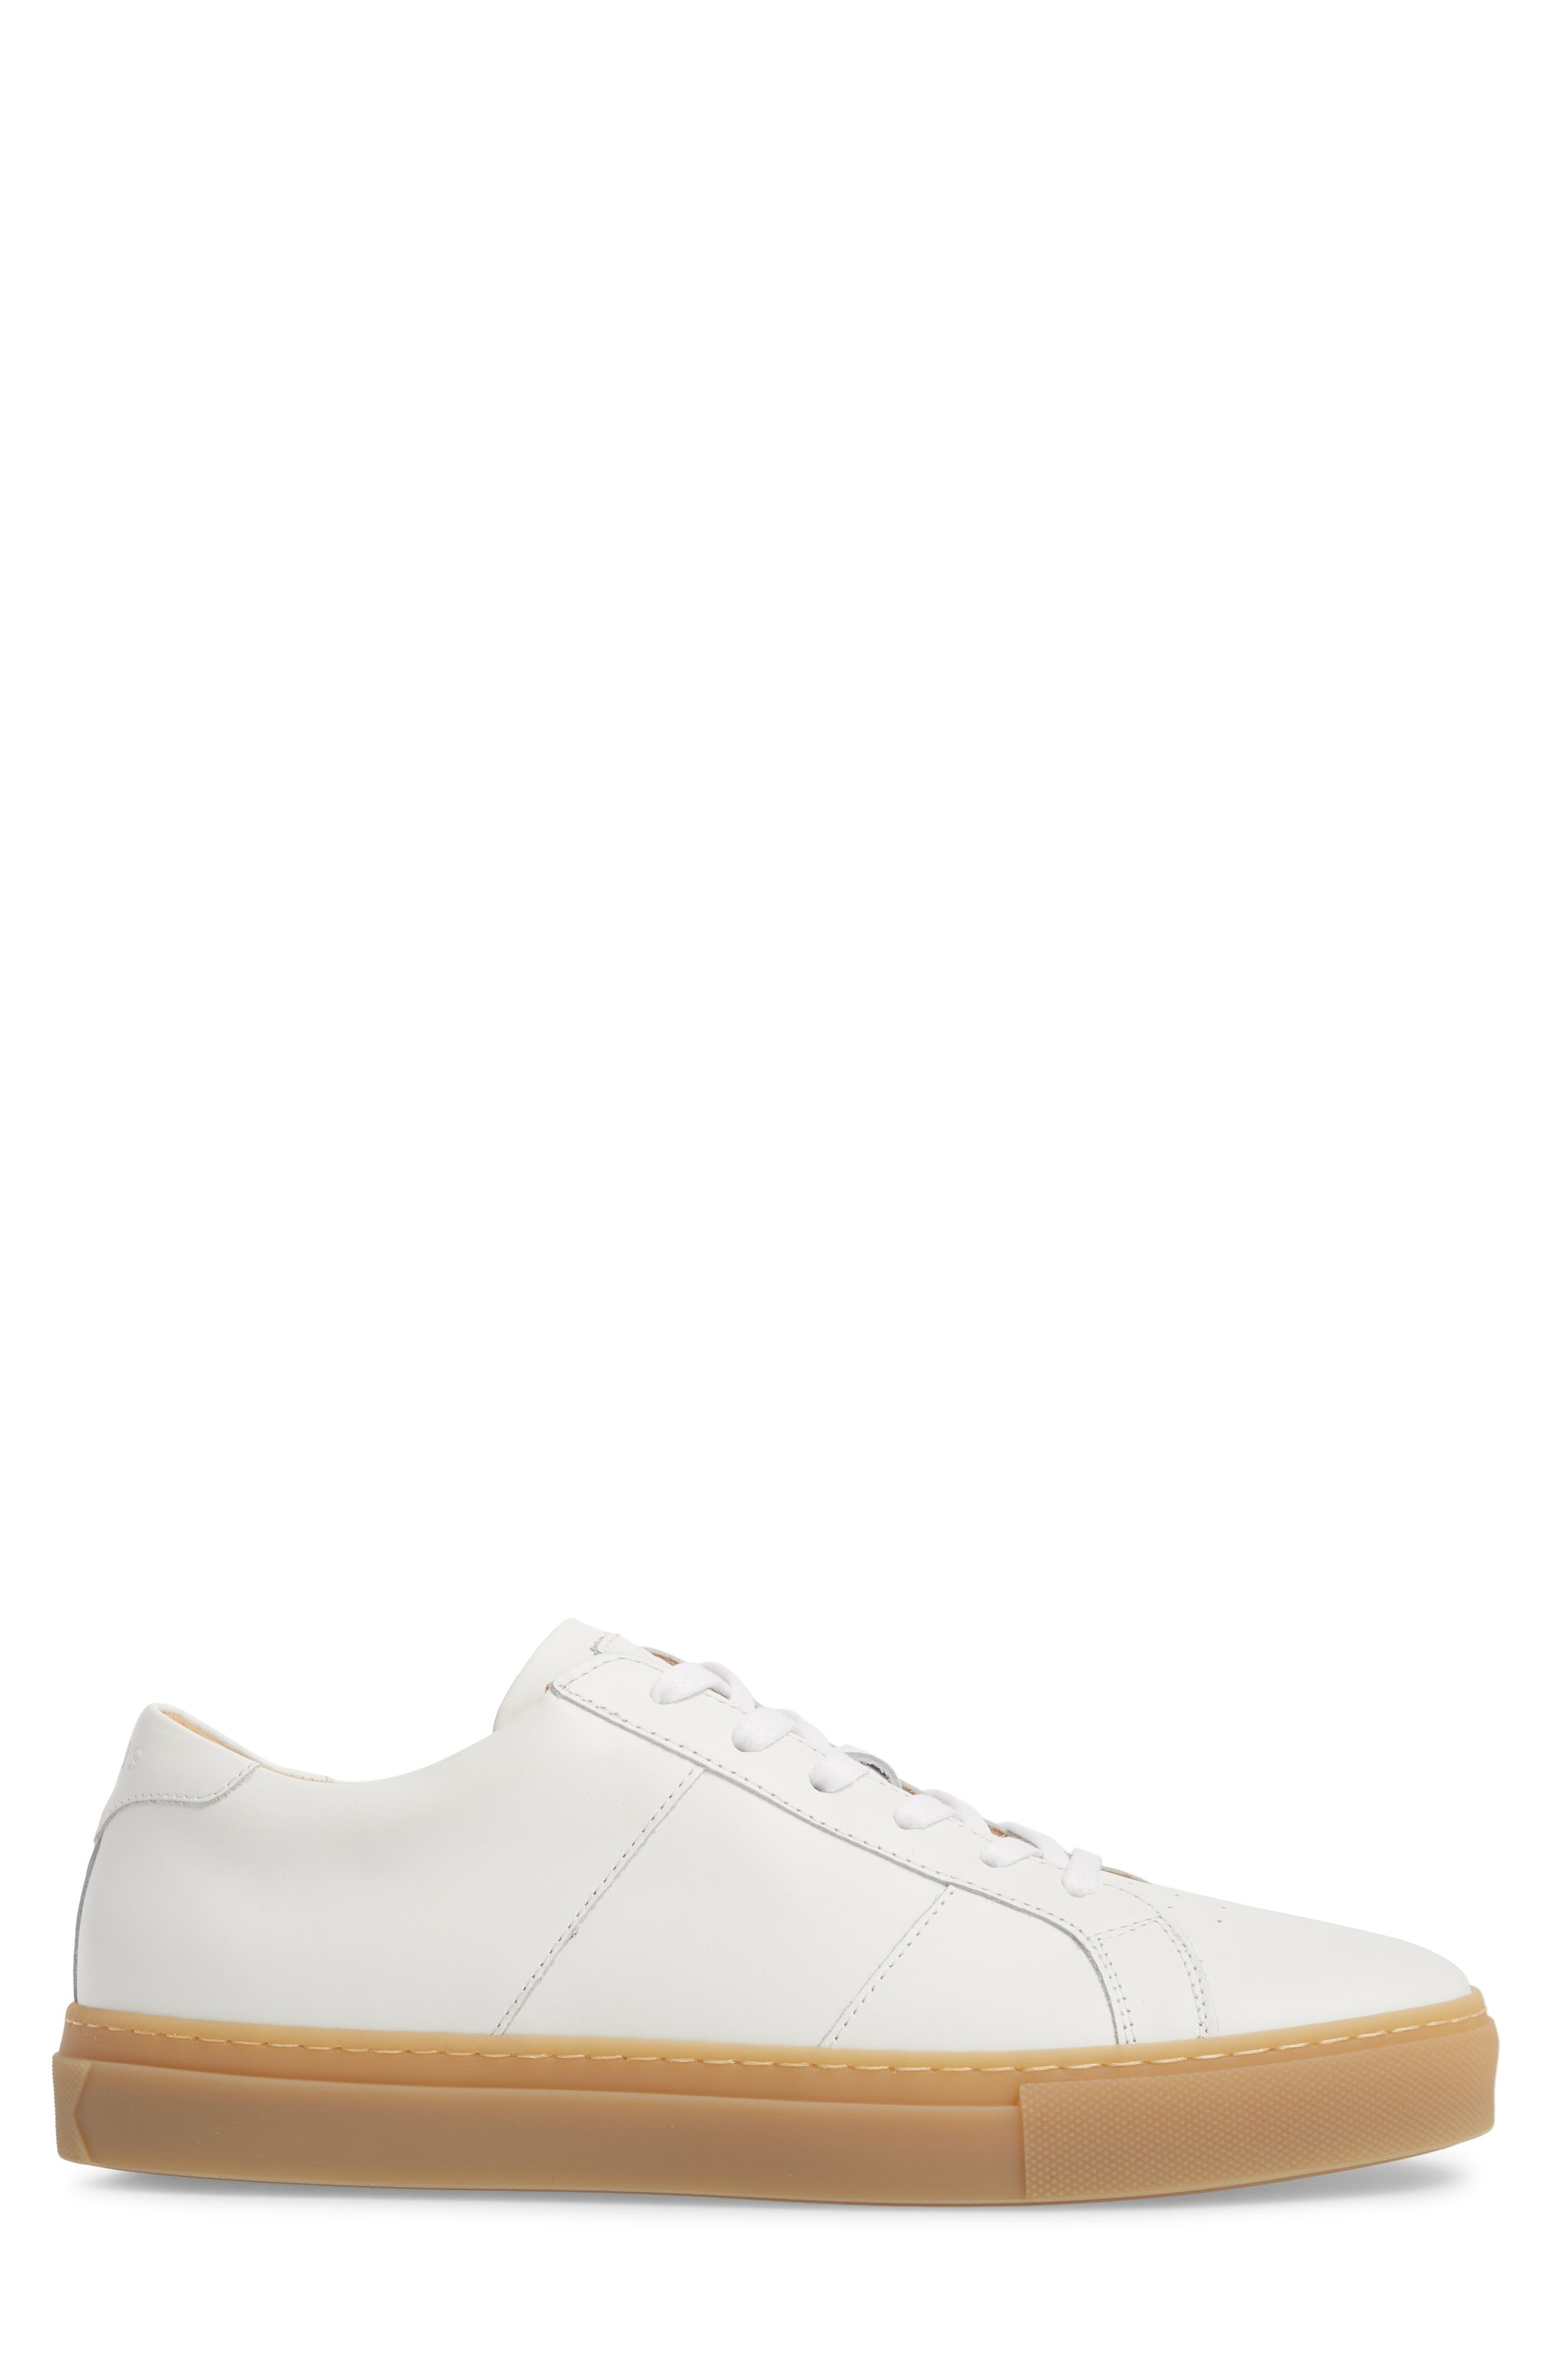 Royale Reverse Sneaker,                             Alternate thumbnail 3, color,                             WHITE/ GUM